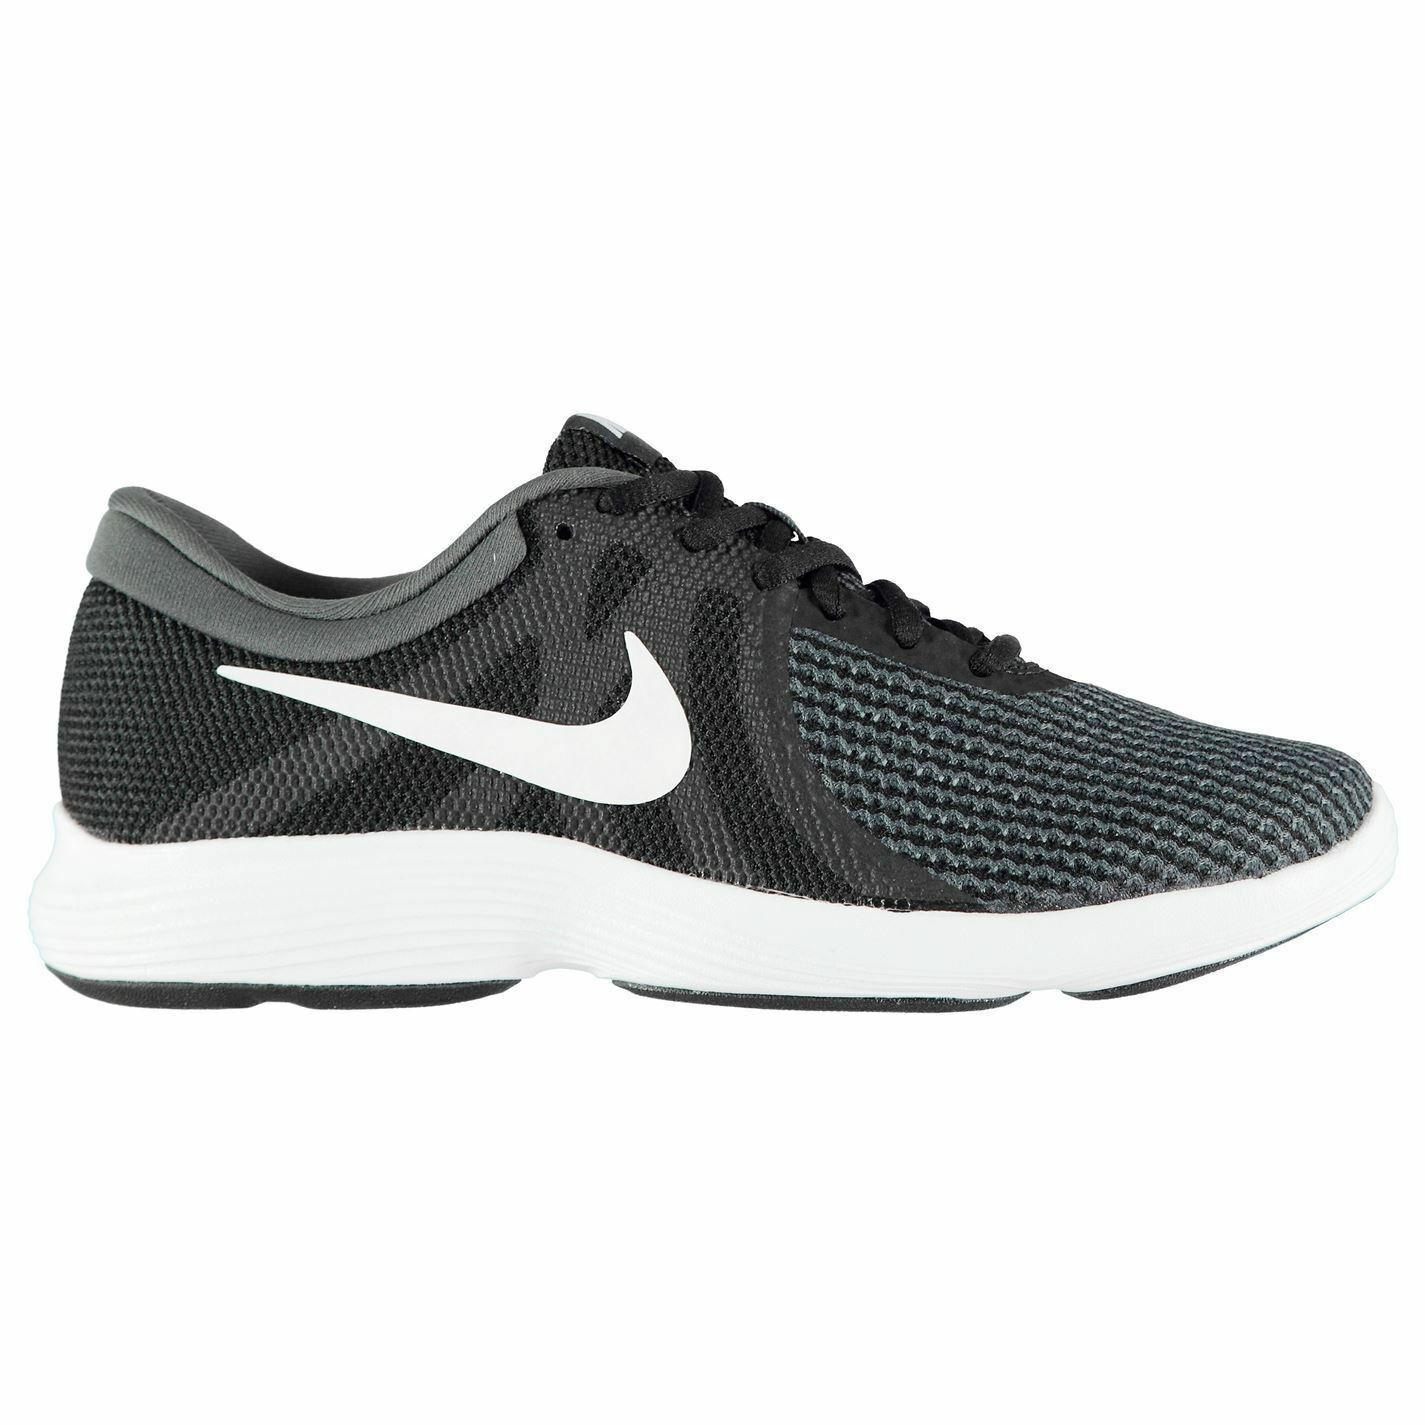 Nike Revolution 4 Trainers Mens Black/White Athletic Sneakers Shoes